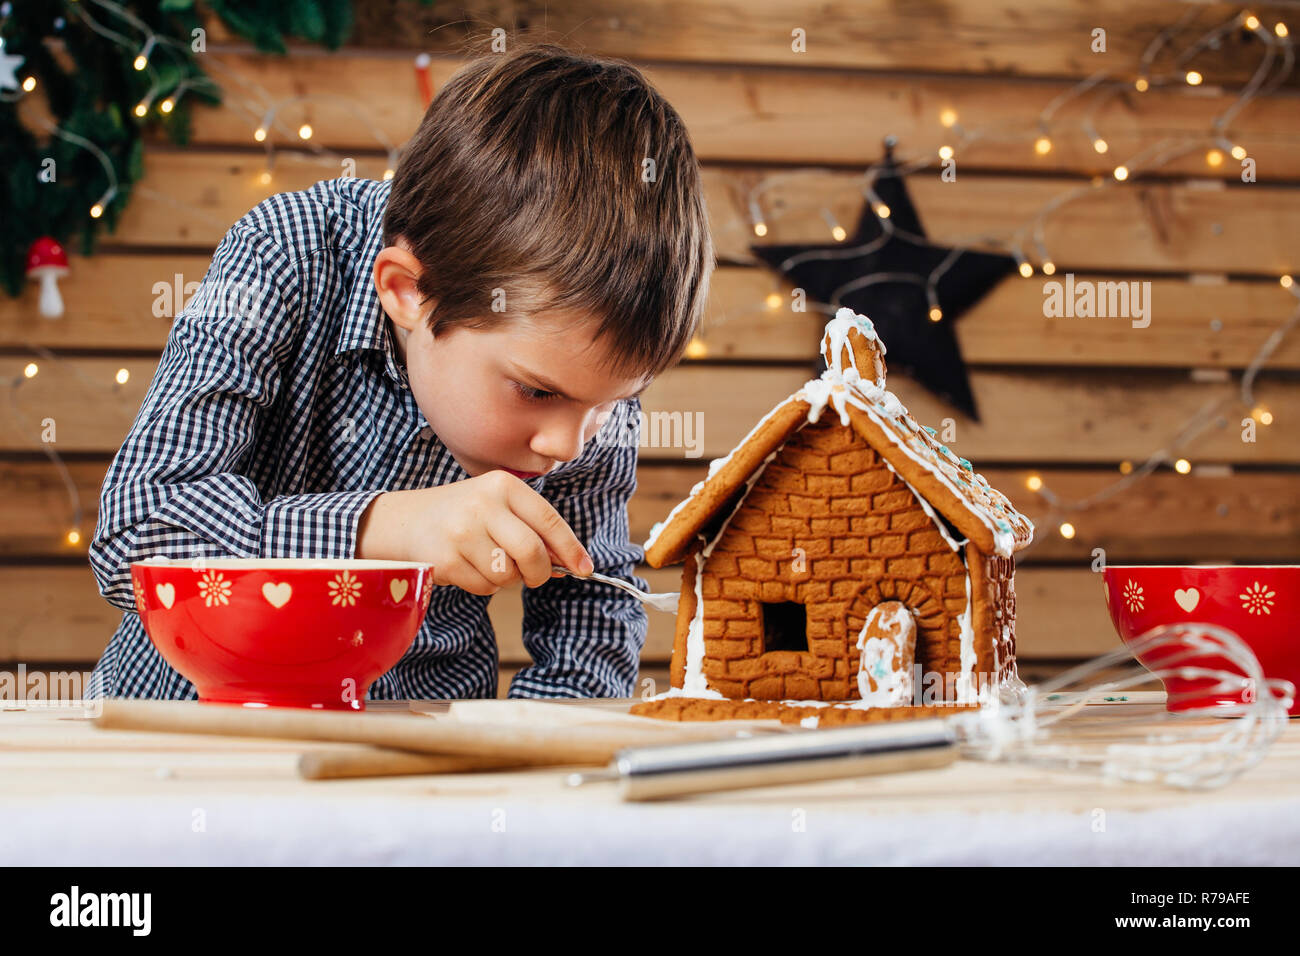 Photo of a young boy decorating a gingerbread house at home just before Christmas. - Stock Image